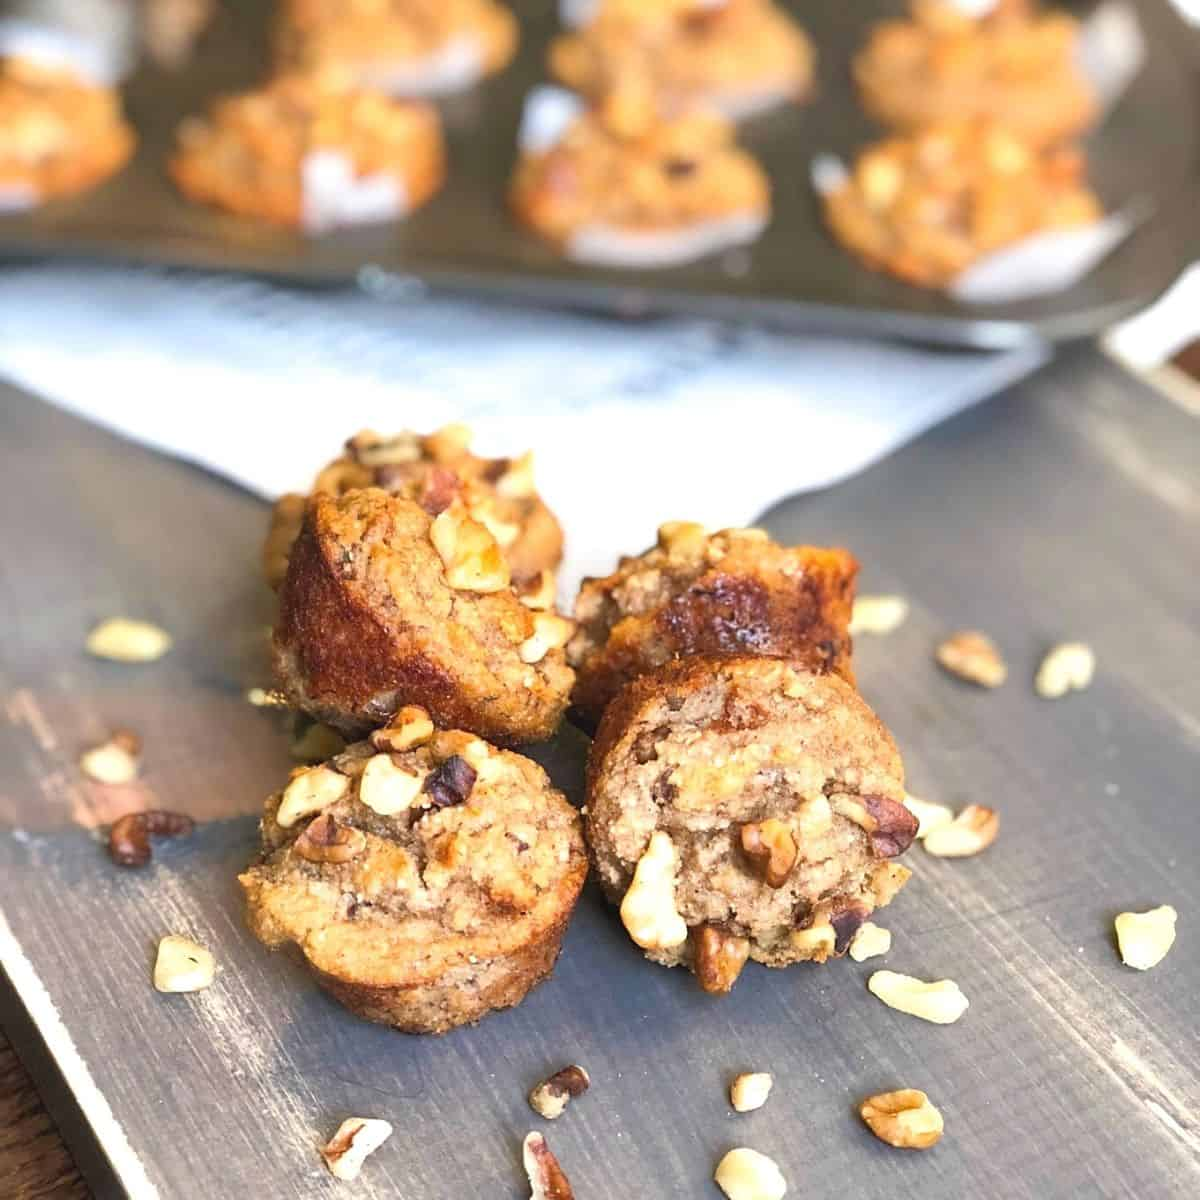 mini banana walnut muffins on a wooden table